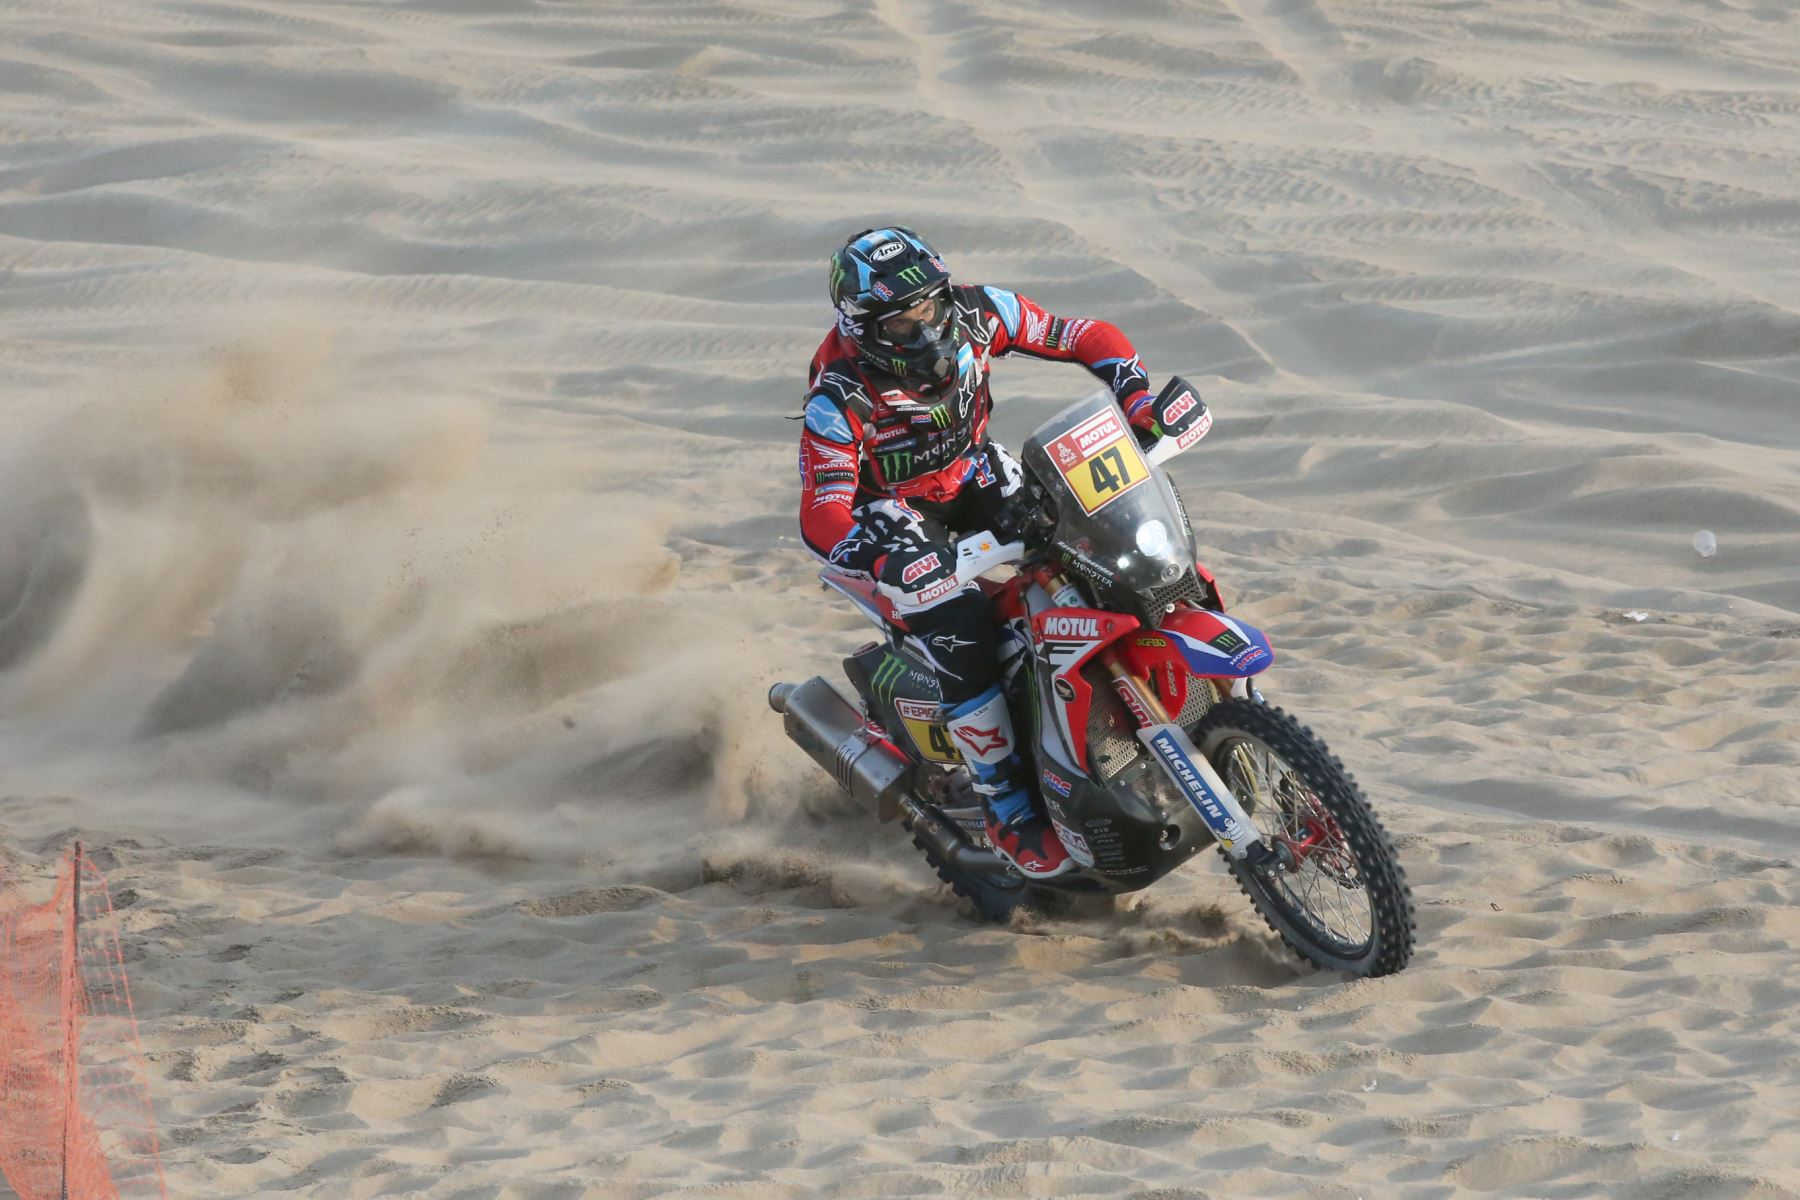 Loeb wins Dakar fourth stage, Sunderland out injured